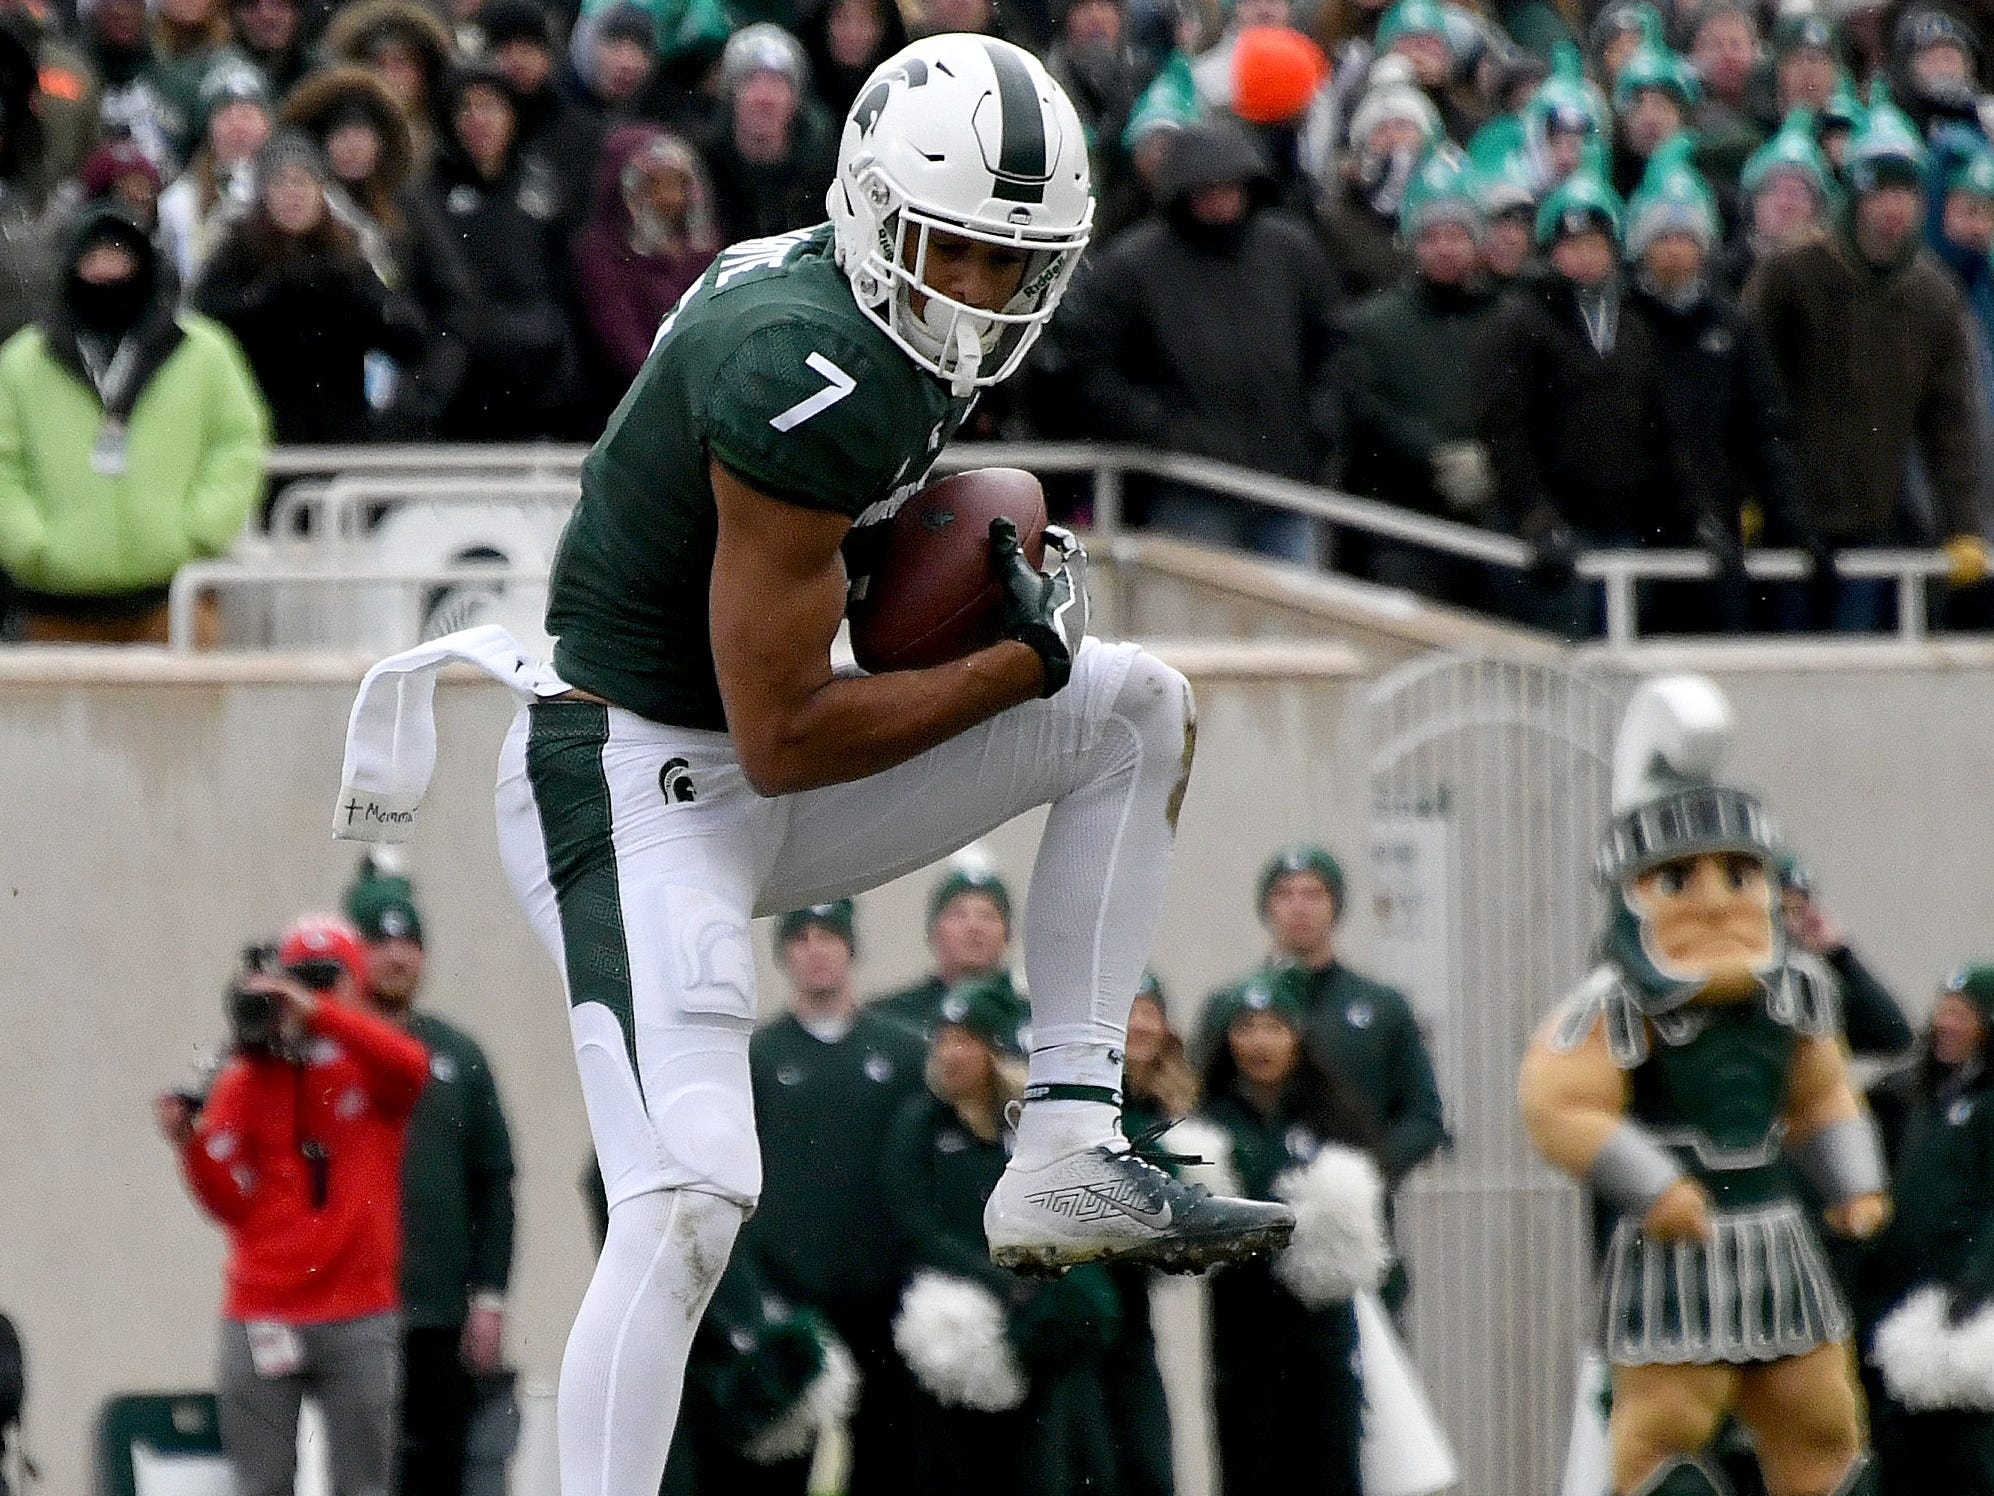 WIDE RECEIVER: Cody White -- After earning Big Ten All-Freshman team honors in 2017, White was on track for an even bigger season as a sophomore before a broken hand forced him to miss four games. He still had 42 catches and should be in the position to be one of the top receivers in the conference in 2019.